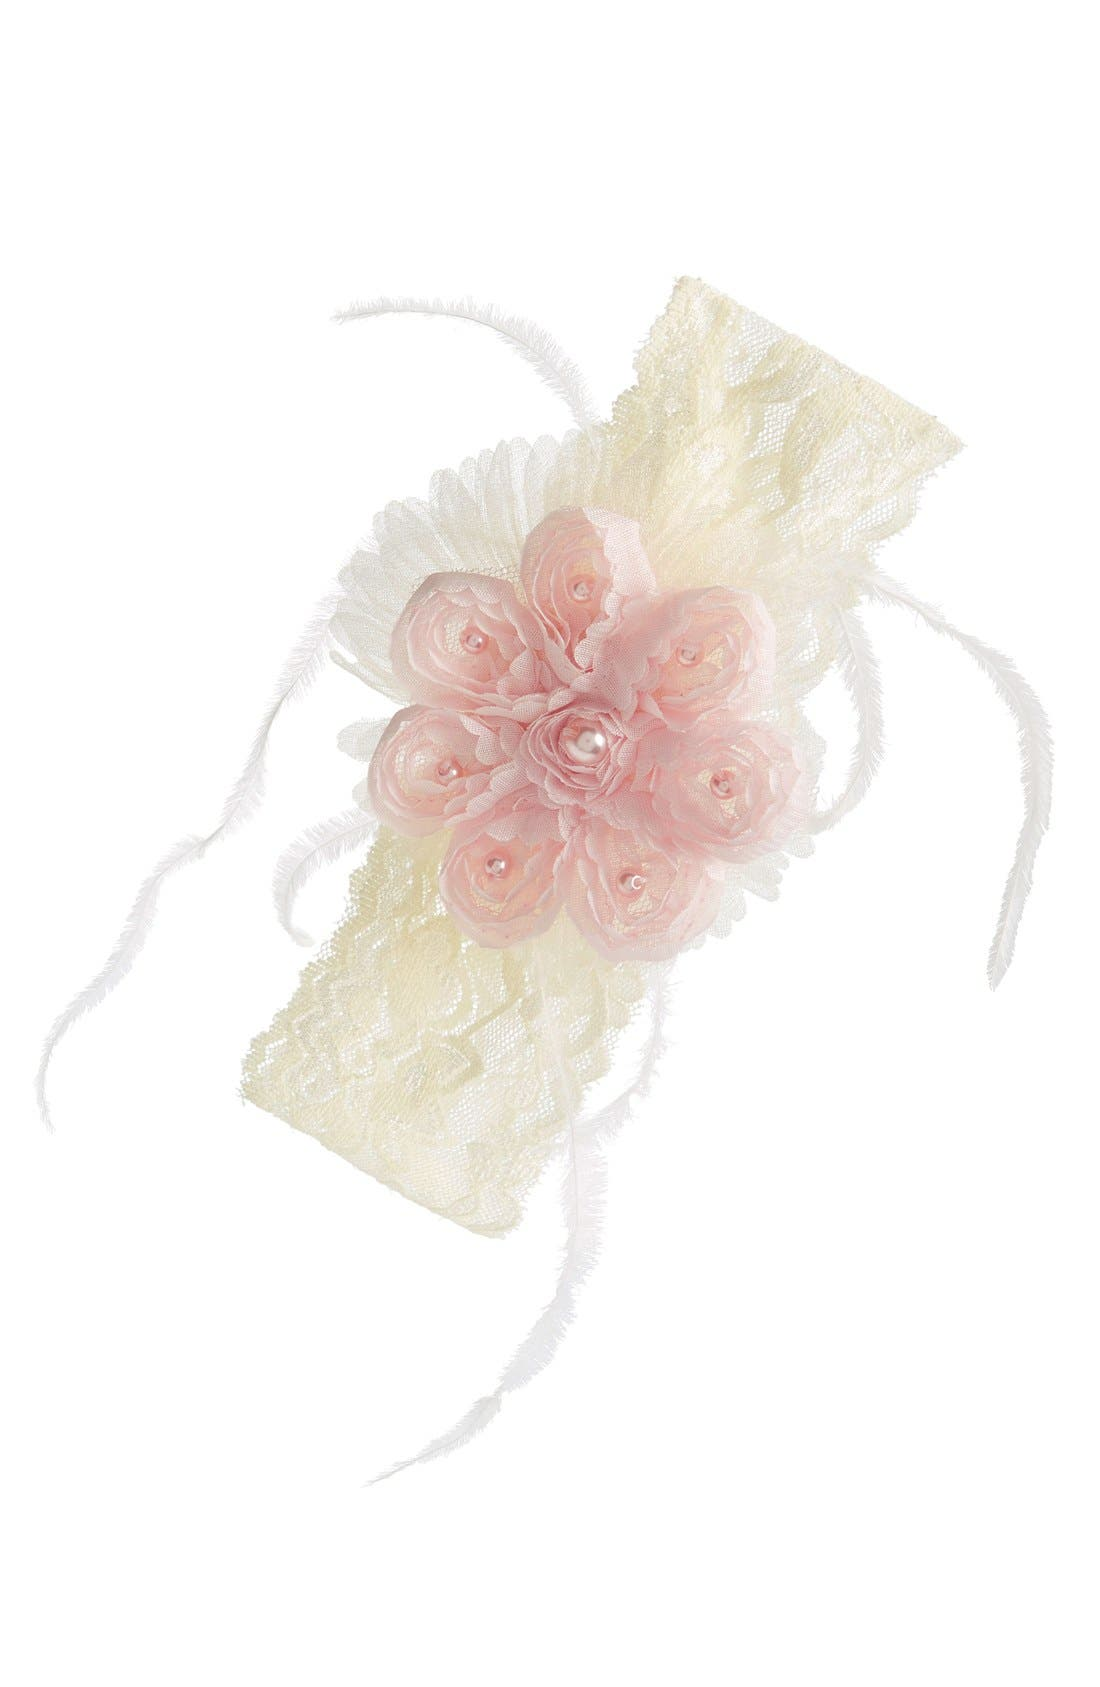 Alternate Image 1 Selected - PLH Bows & Laces Headband (Baby Girls & Toddler Girls)